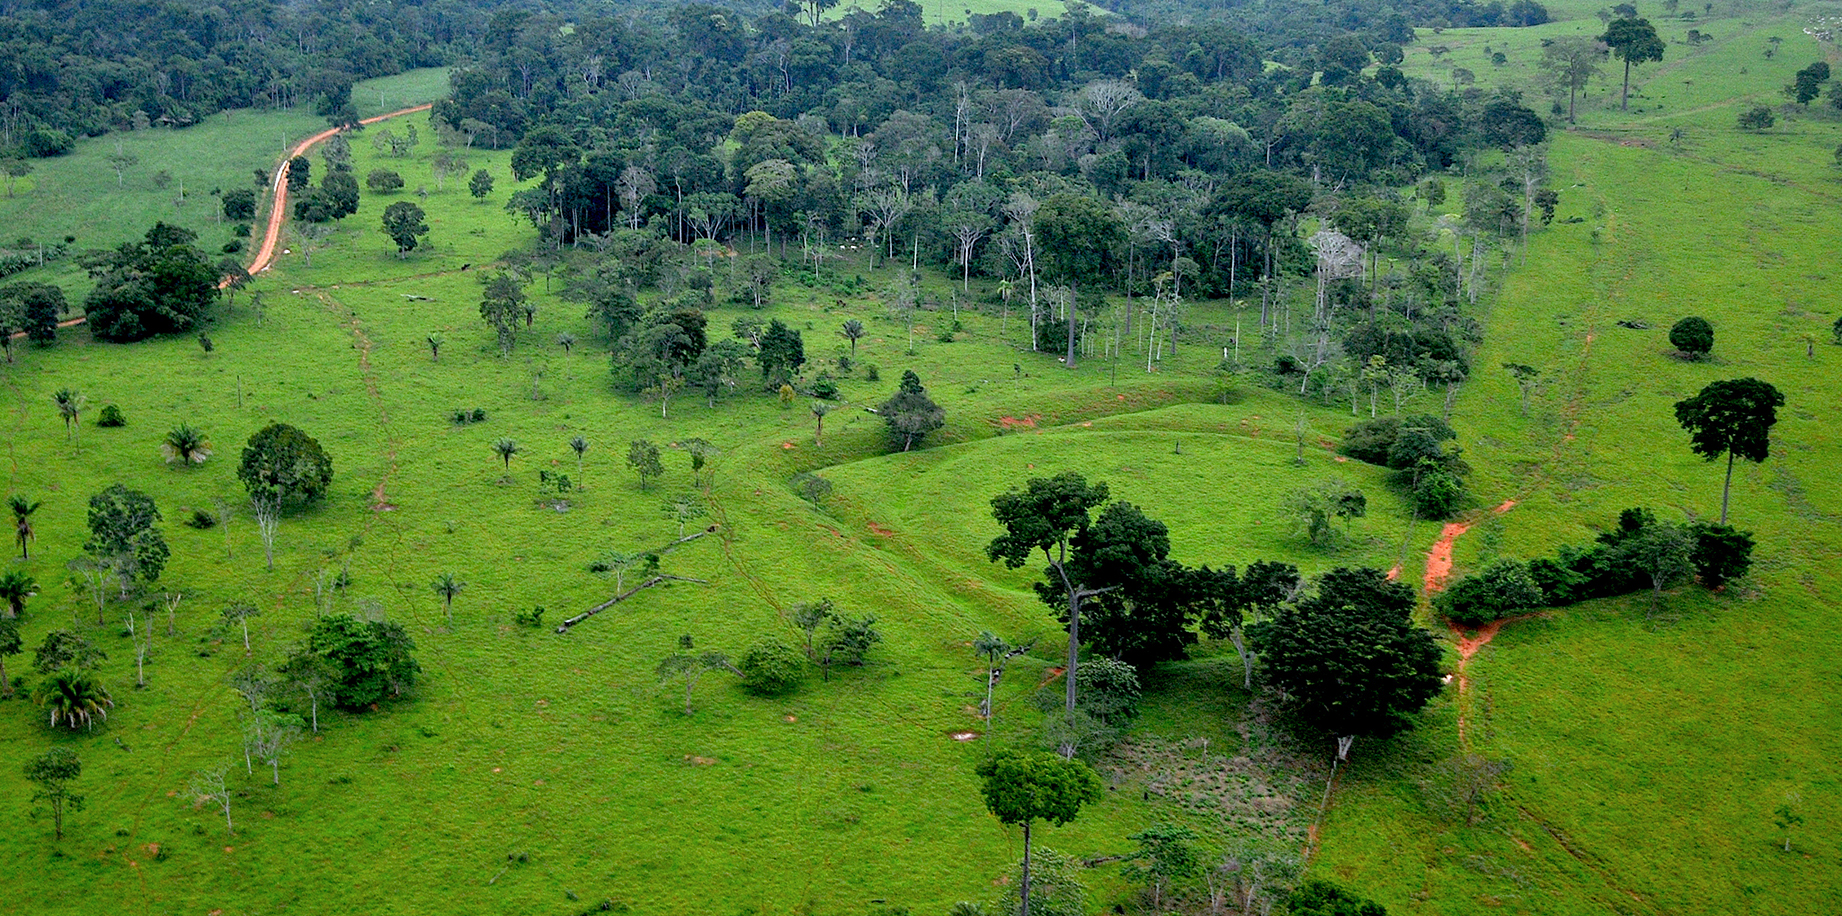 Ancient Amazonian societies managed the forest intensively but sustainably